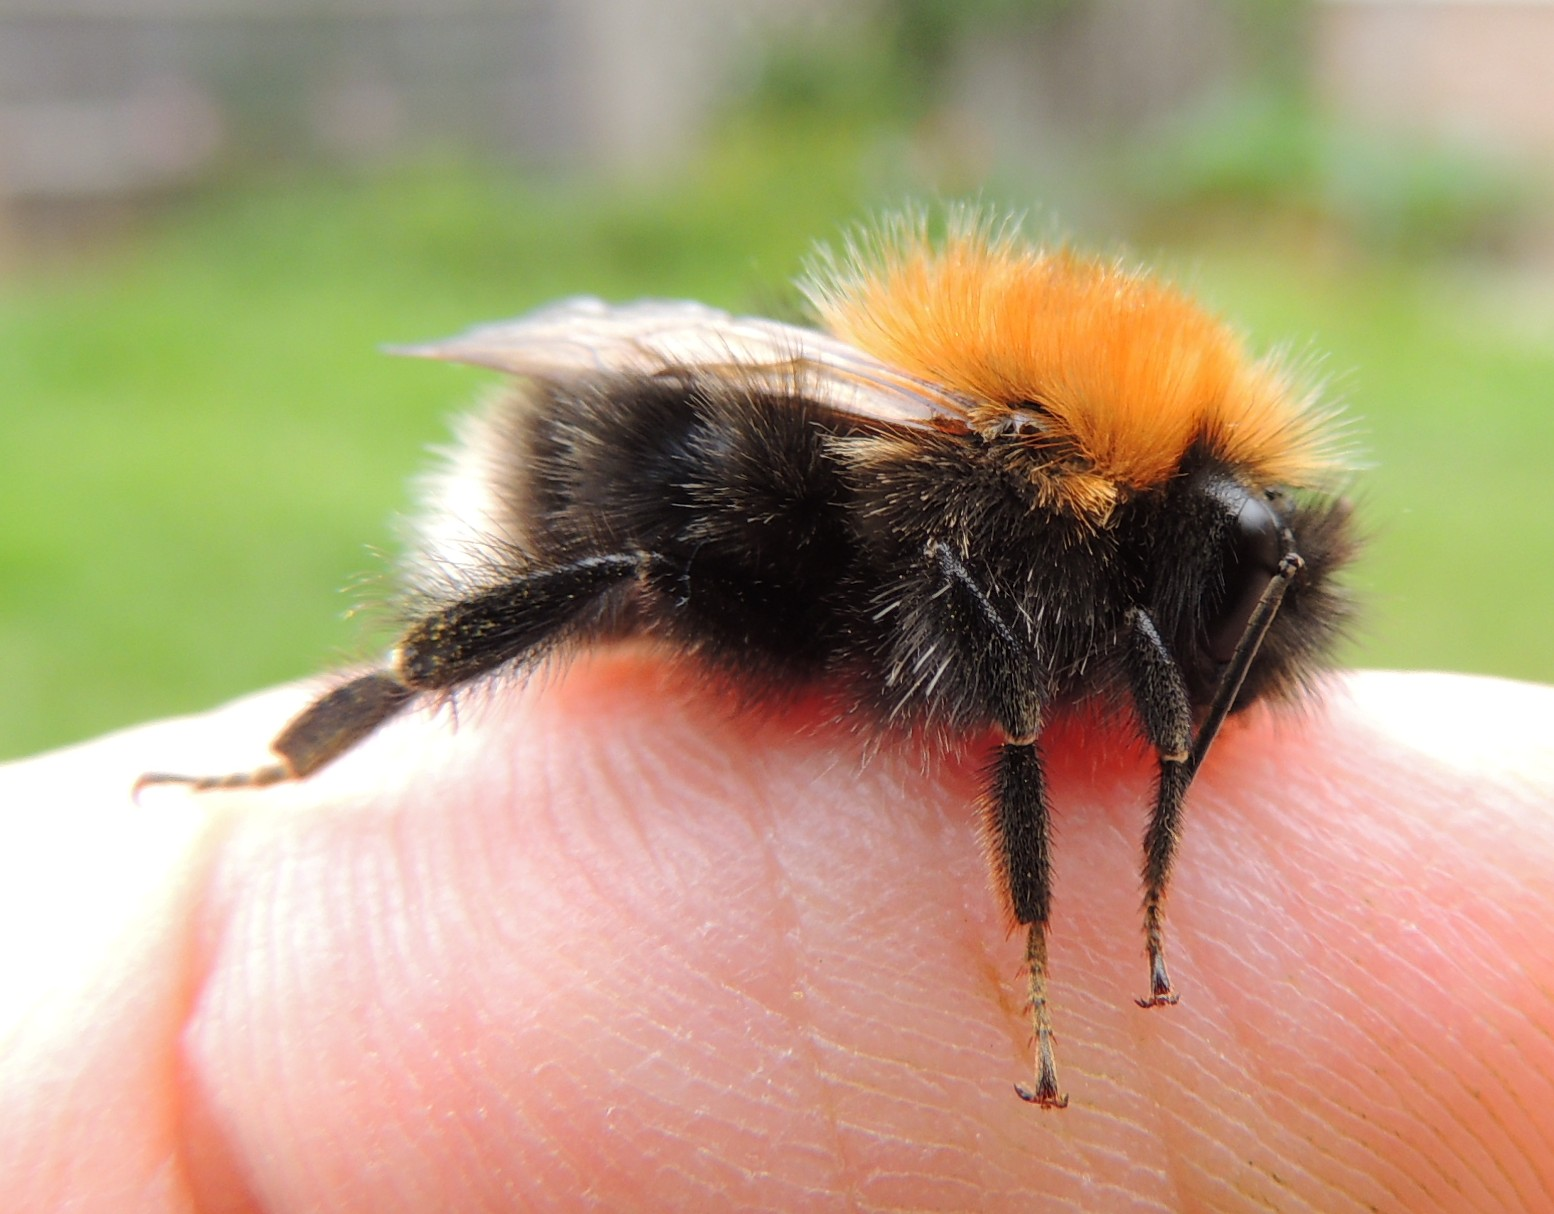 file male bumblebee bombus hypnorum on a finger sandy